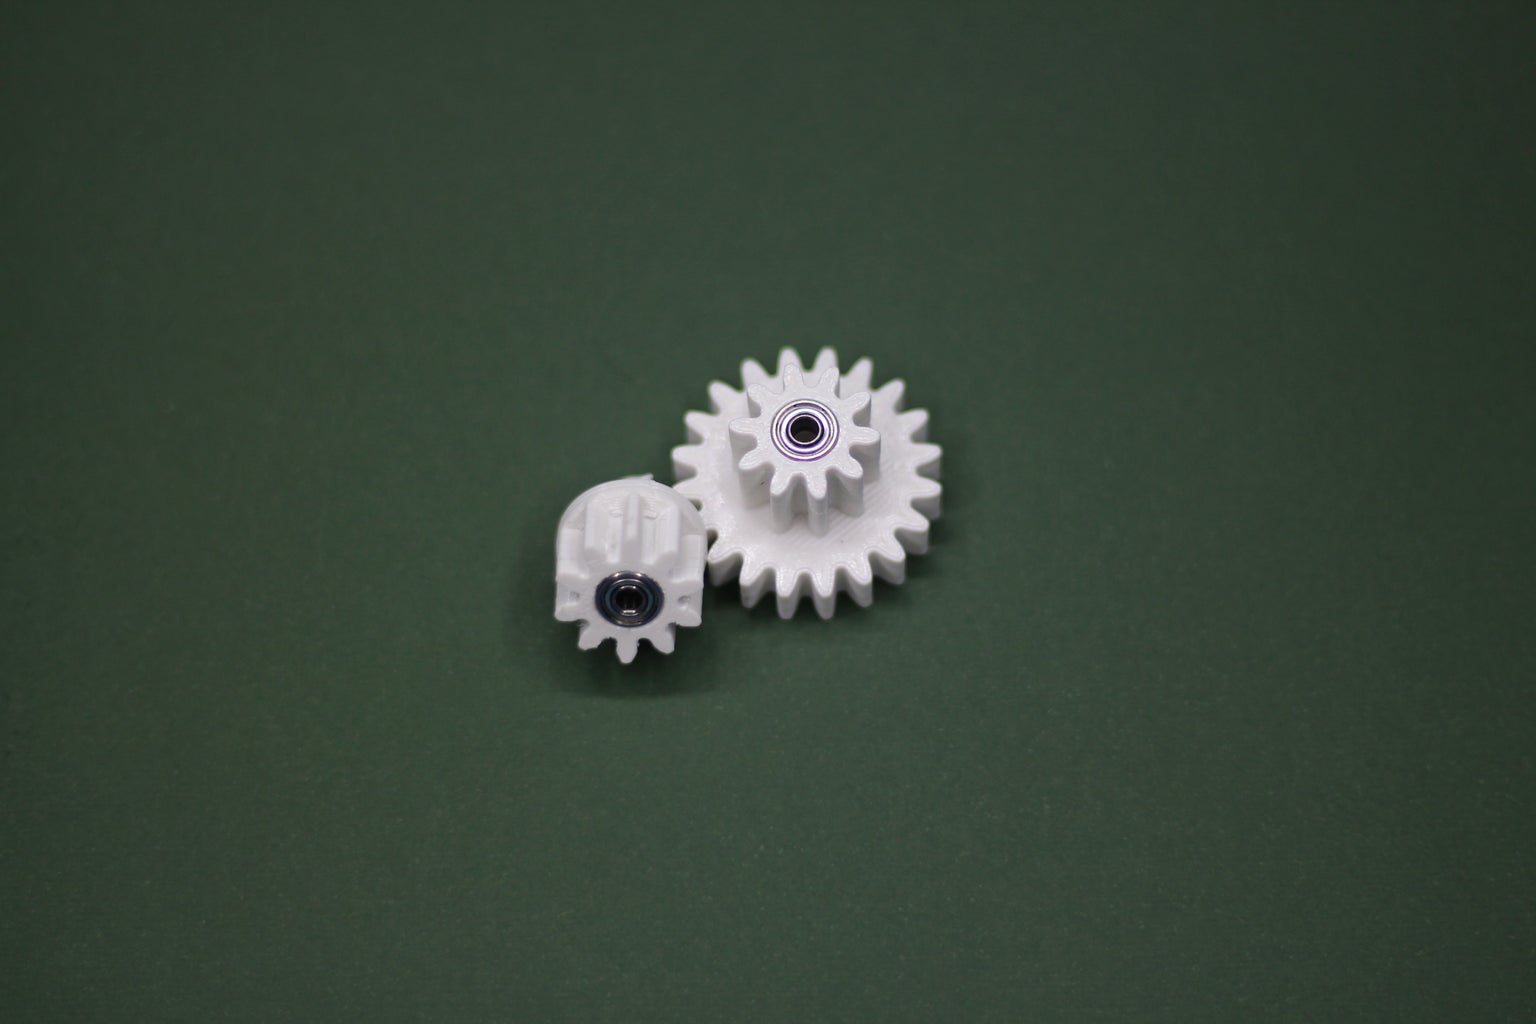 Assembling the Gears and Putting Them Together With Other Parts